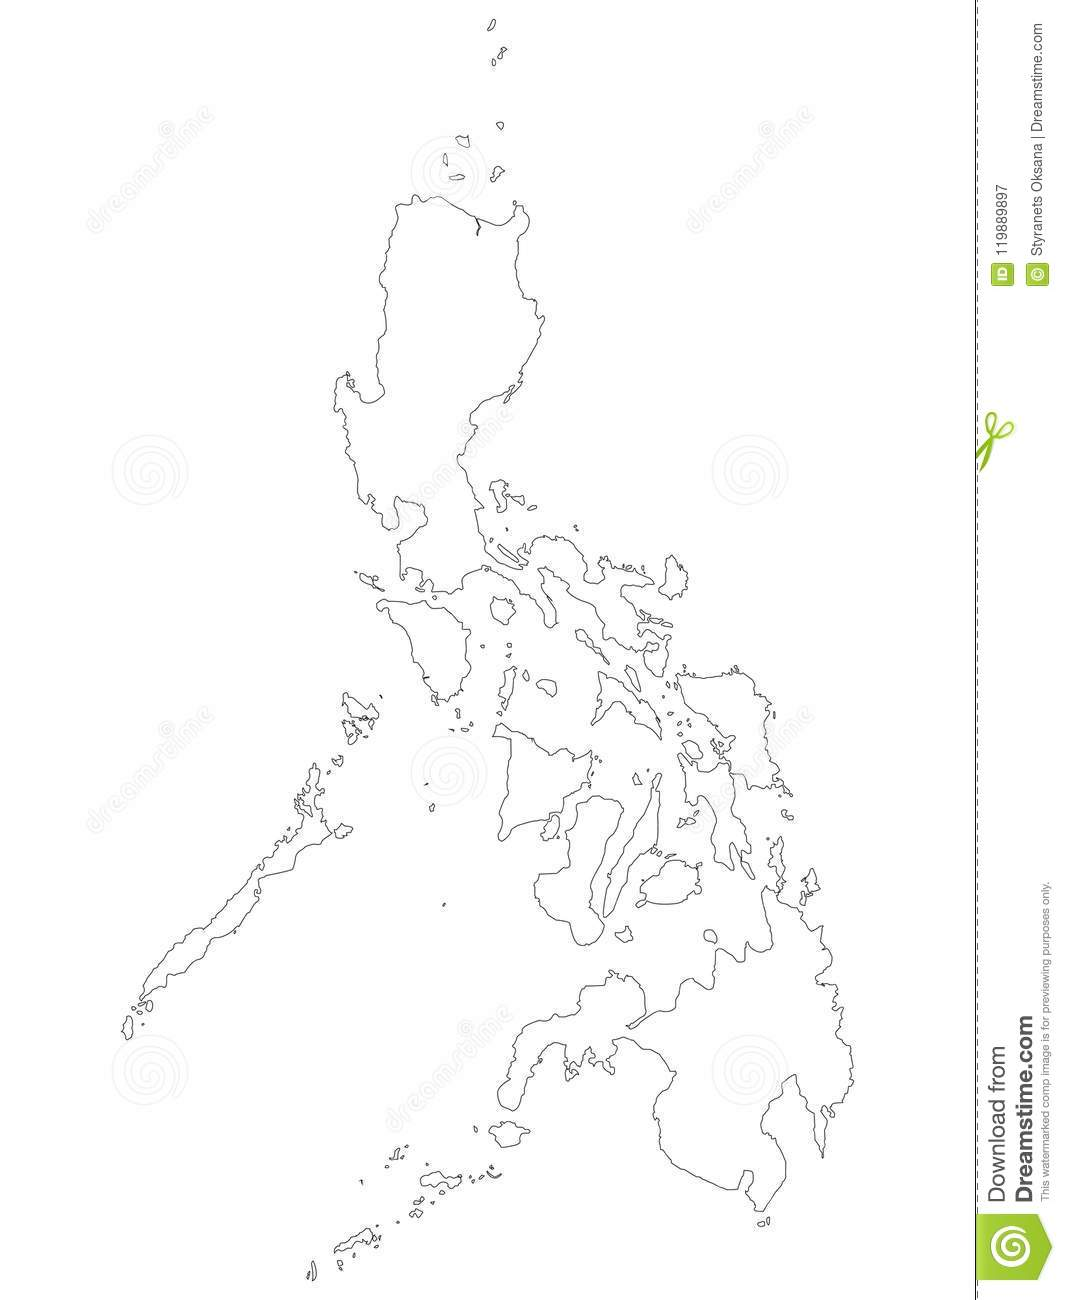 Philippines Map Black And White.Outline Map Of The Republic Of The Philippines Stock Vector